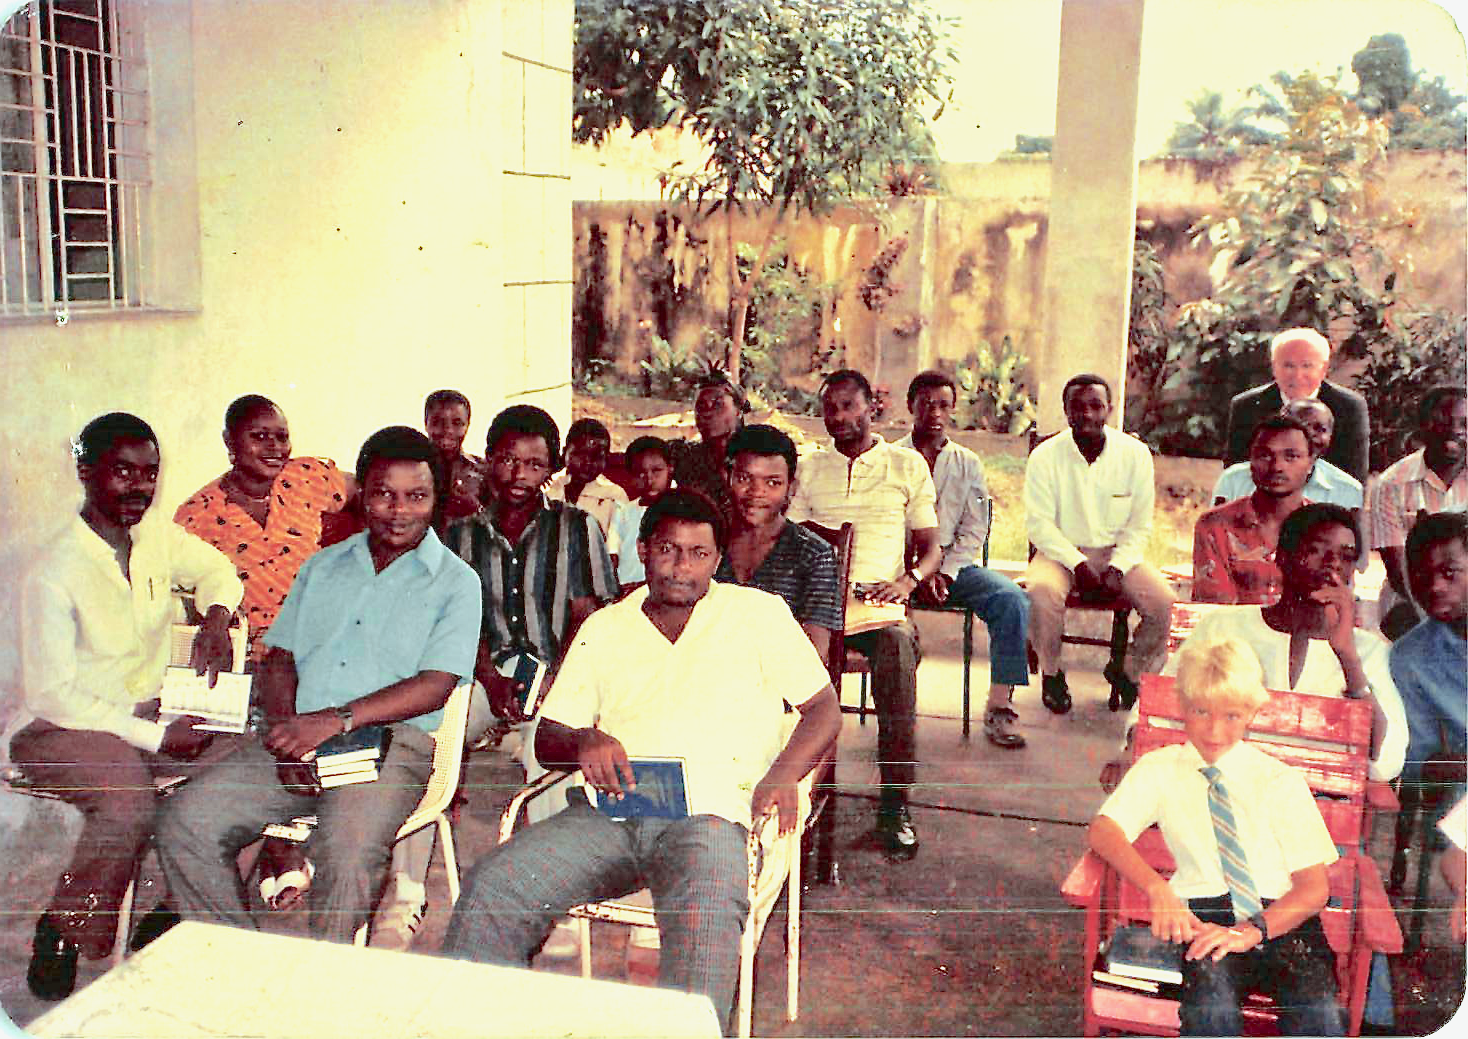 Members, missionaries and friends gather in the carport of Nkitabungi Mbuyi's home in early 1986, while awaiting official recognition of the Church from Zaire (now the Democratic Republic of the Congo) in 1986. The carport was used since attendance outgrew the available space in the Kinshasa home's living room.